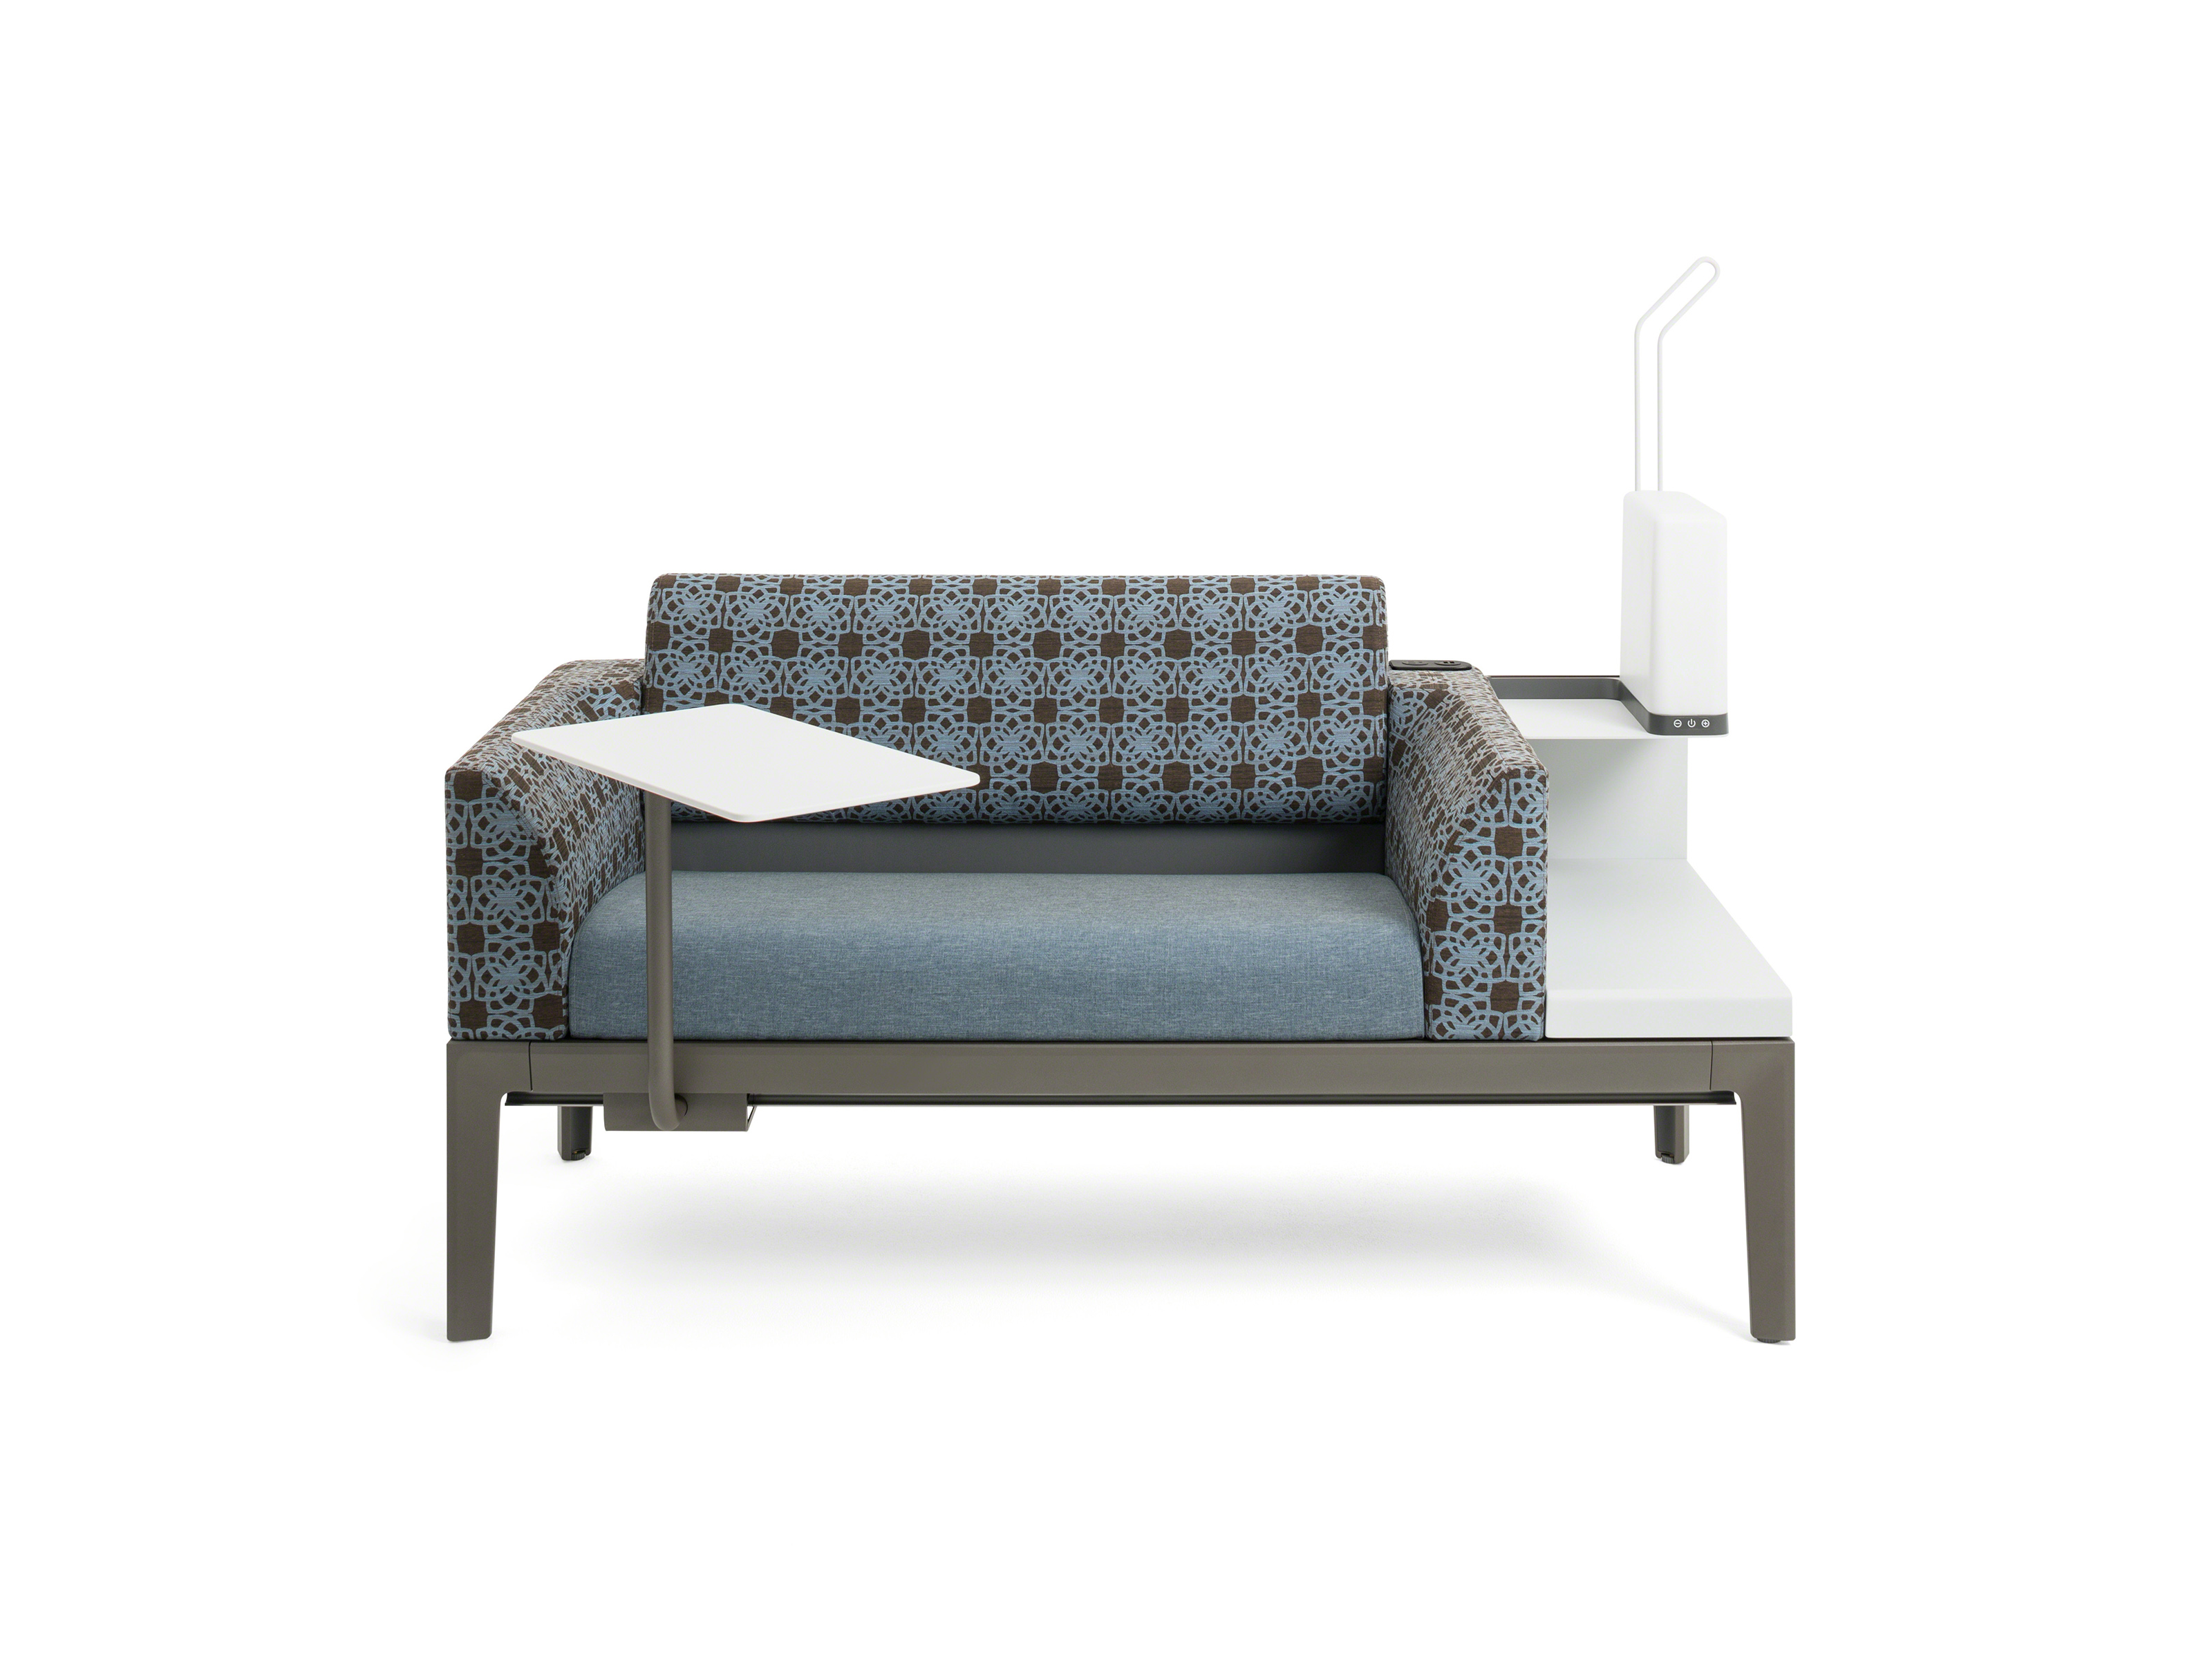 Surround sofa by Steelcase health